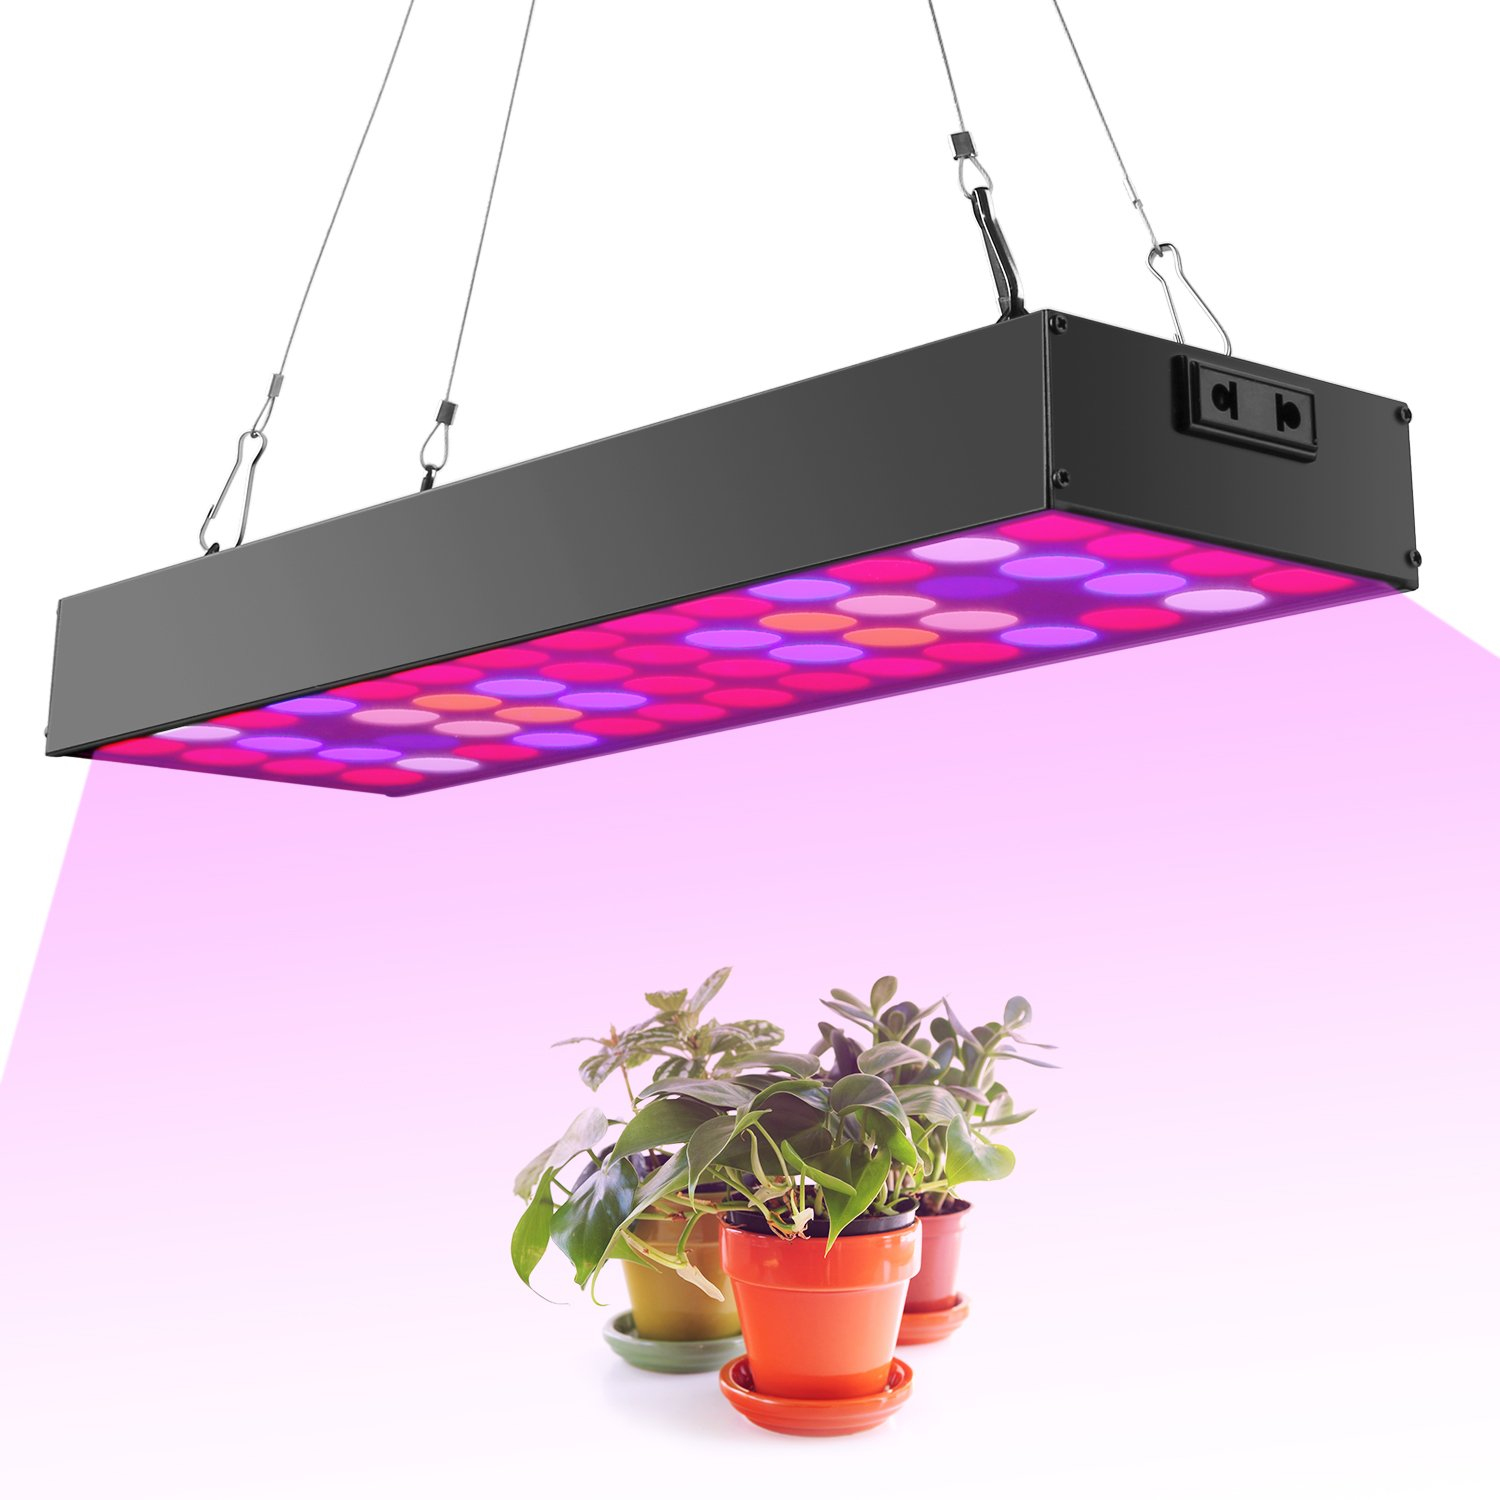 Newforshop 30W LED Grow Light kit, Full Spectrum with UV&IR for Indoor Greenhouse Plants Veg and Flower, Plants